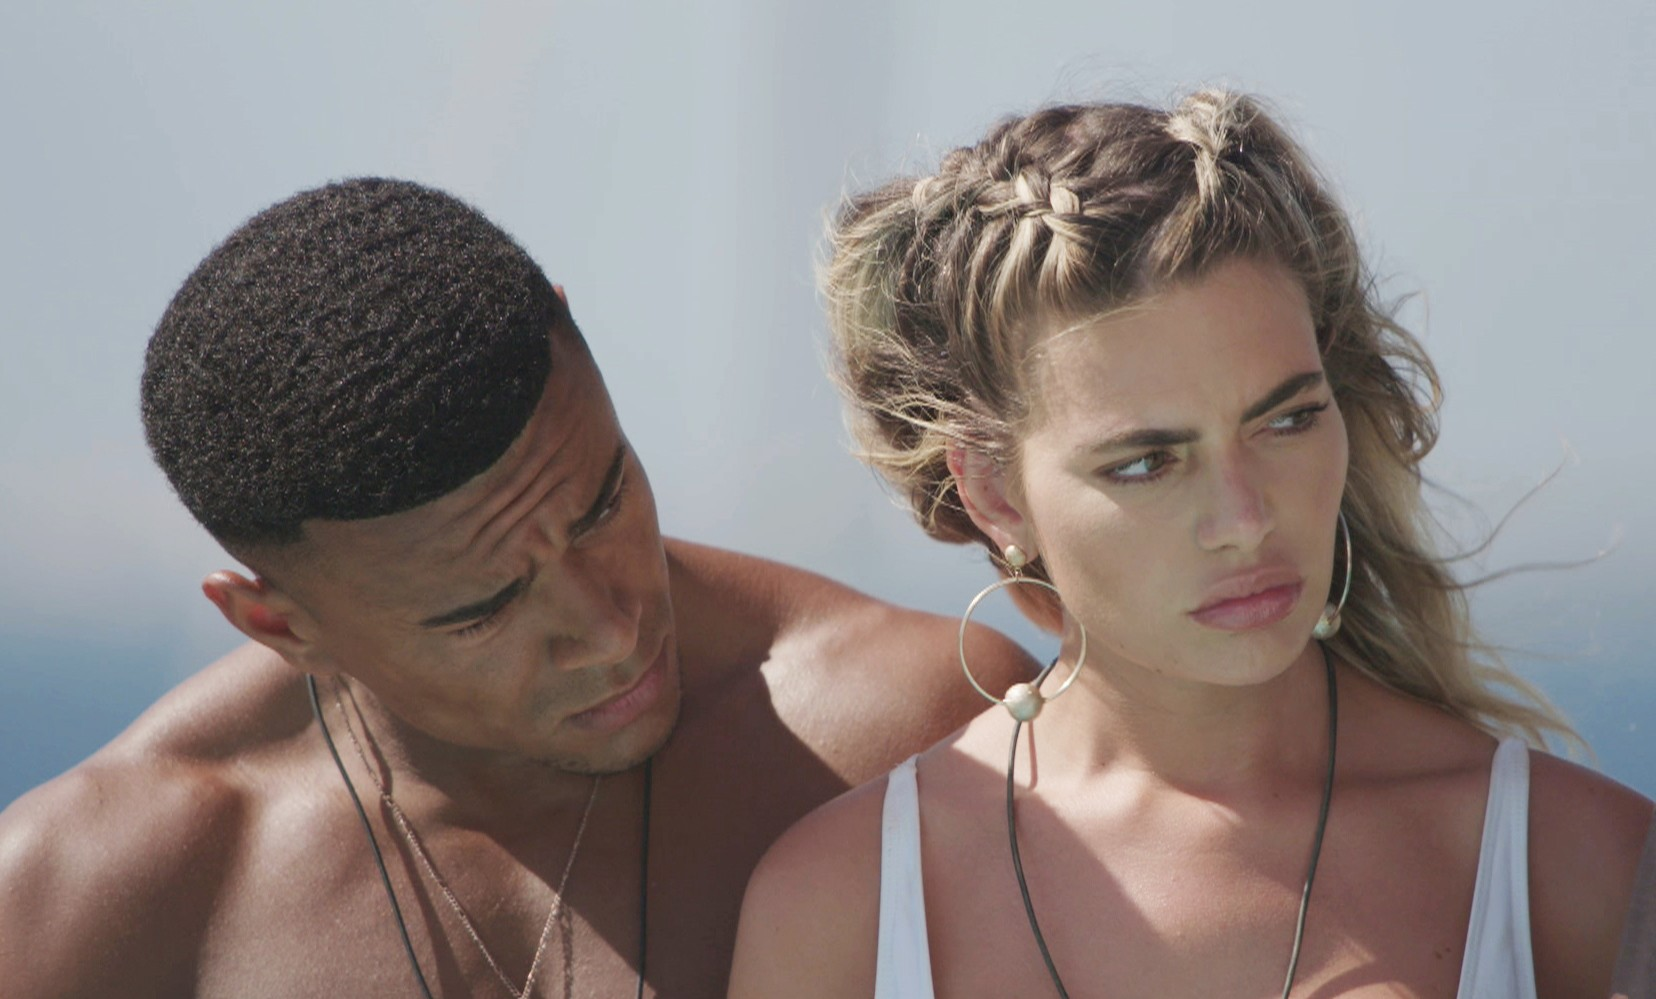 Megan and Wes on Love Island